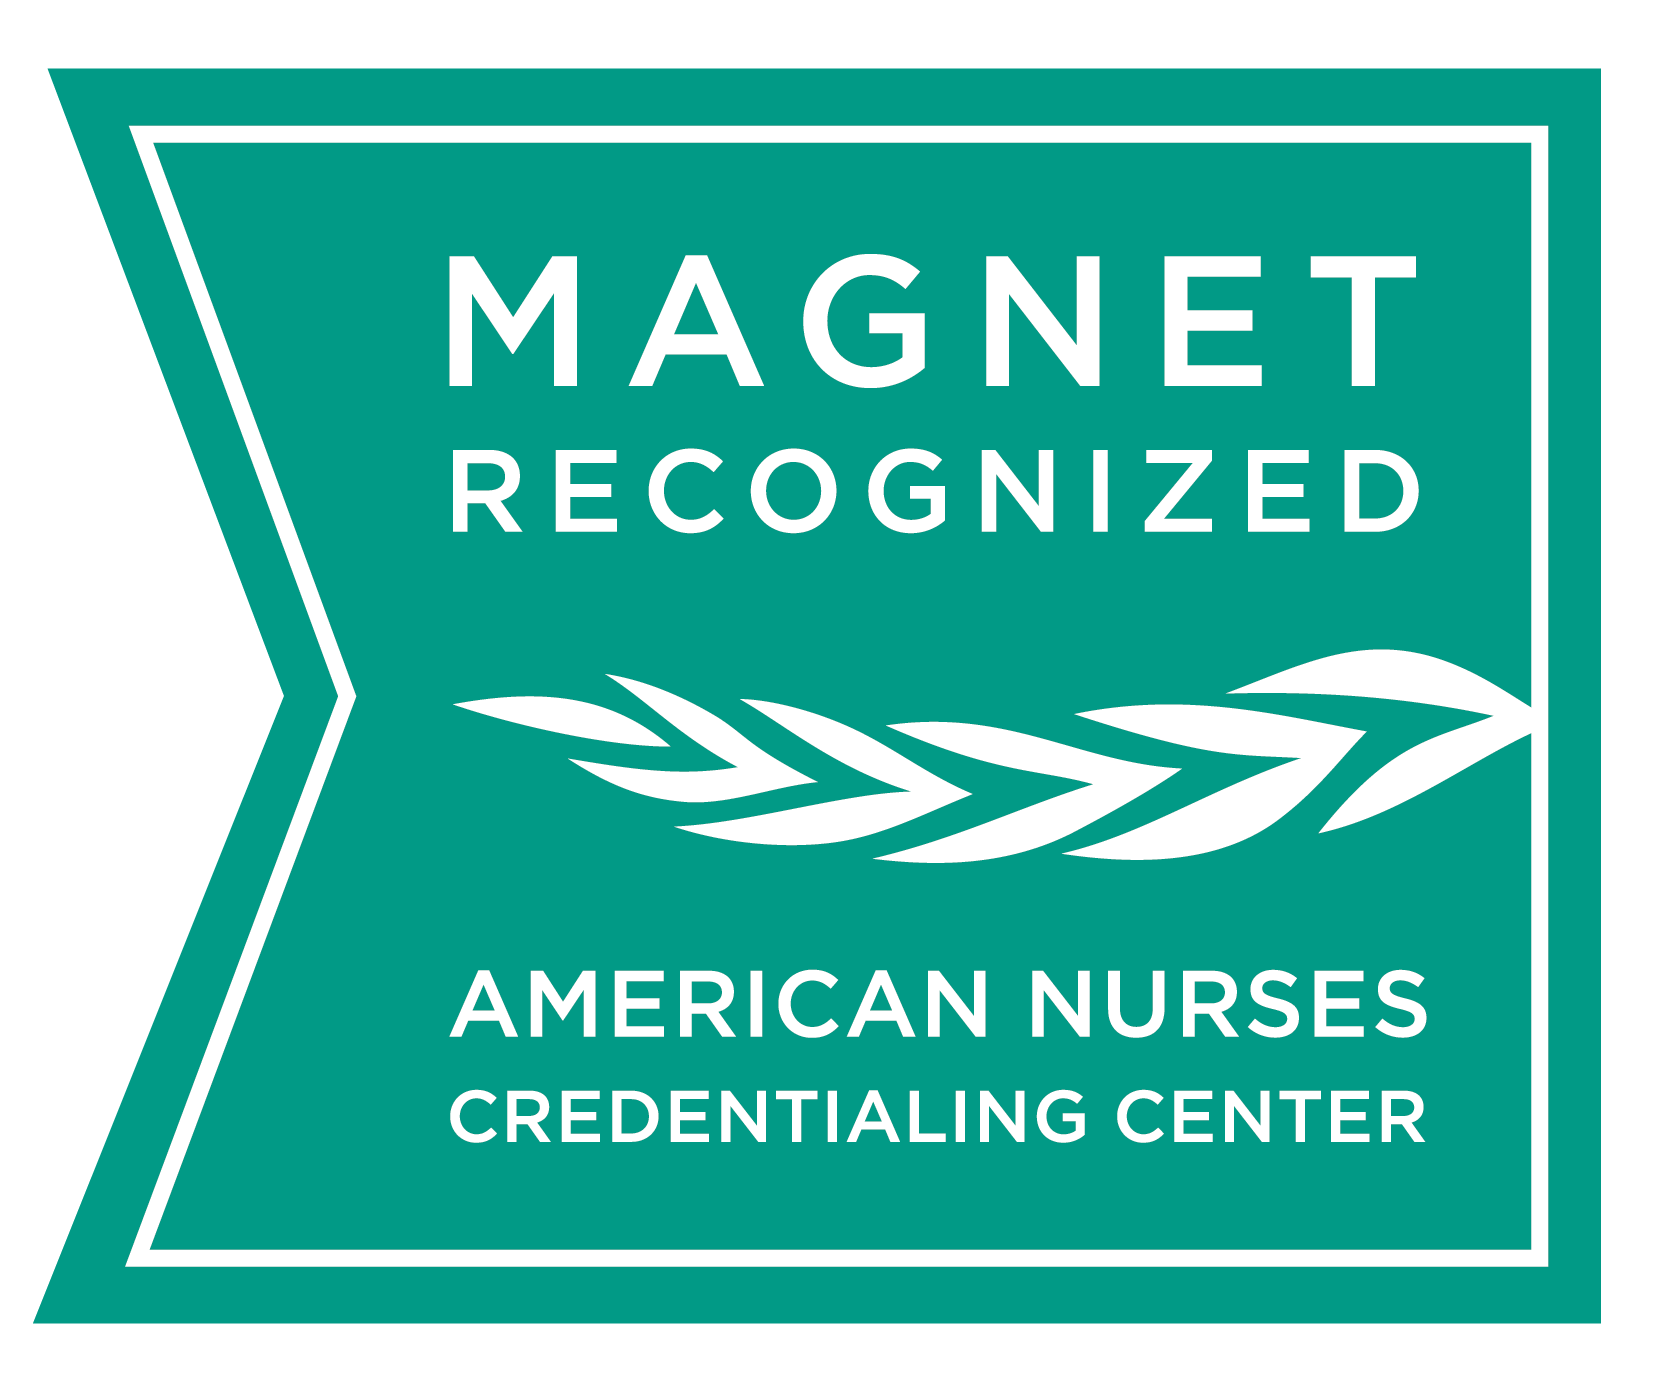 Genesis Medical Center, Davenport, receives Magnet recognition for nursing excellence.